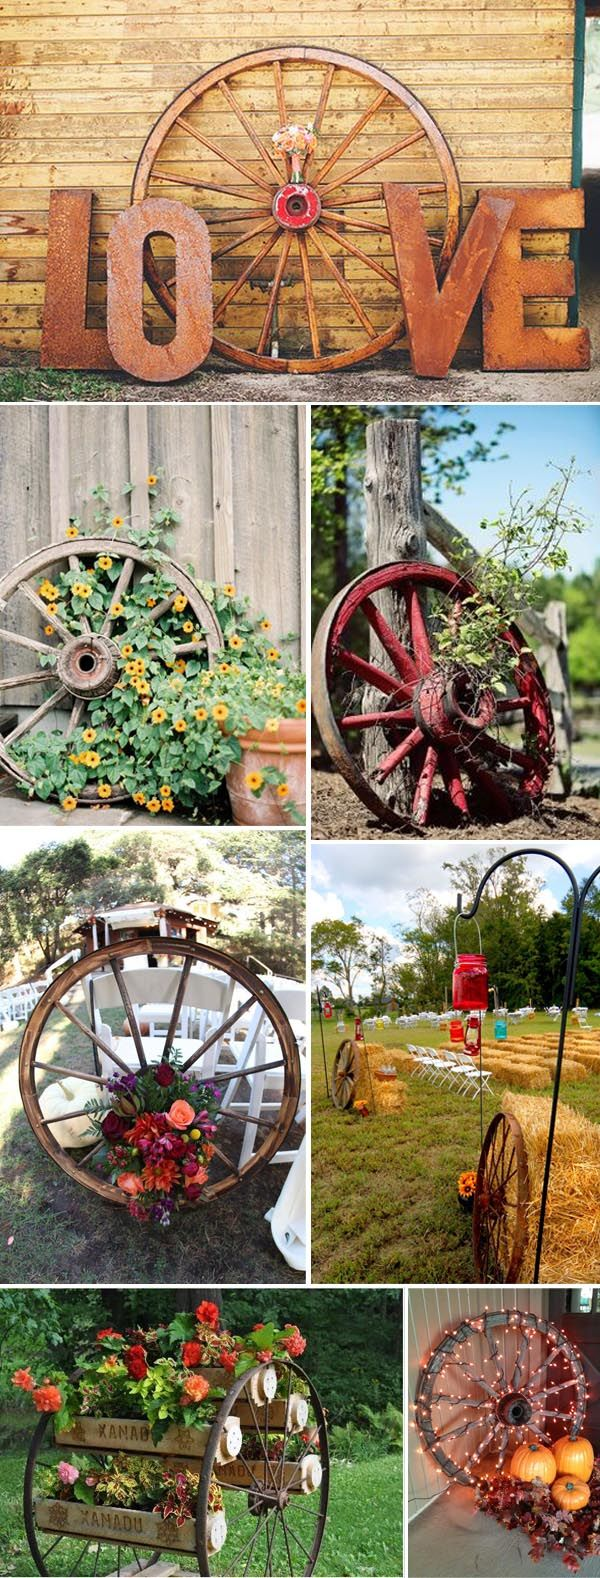 d5f2d705a783e336f48 wagon wheel landscaping landscaping rustic